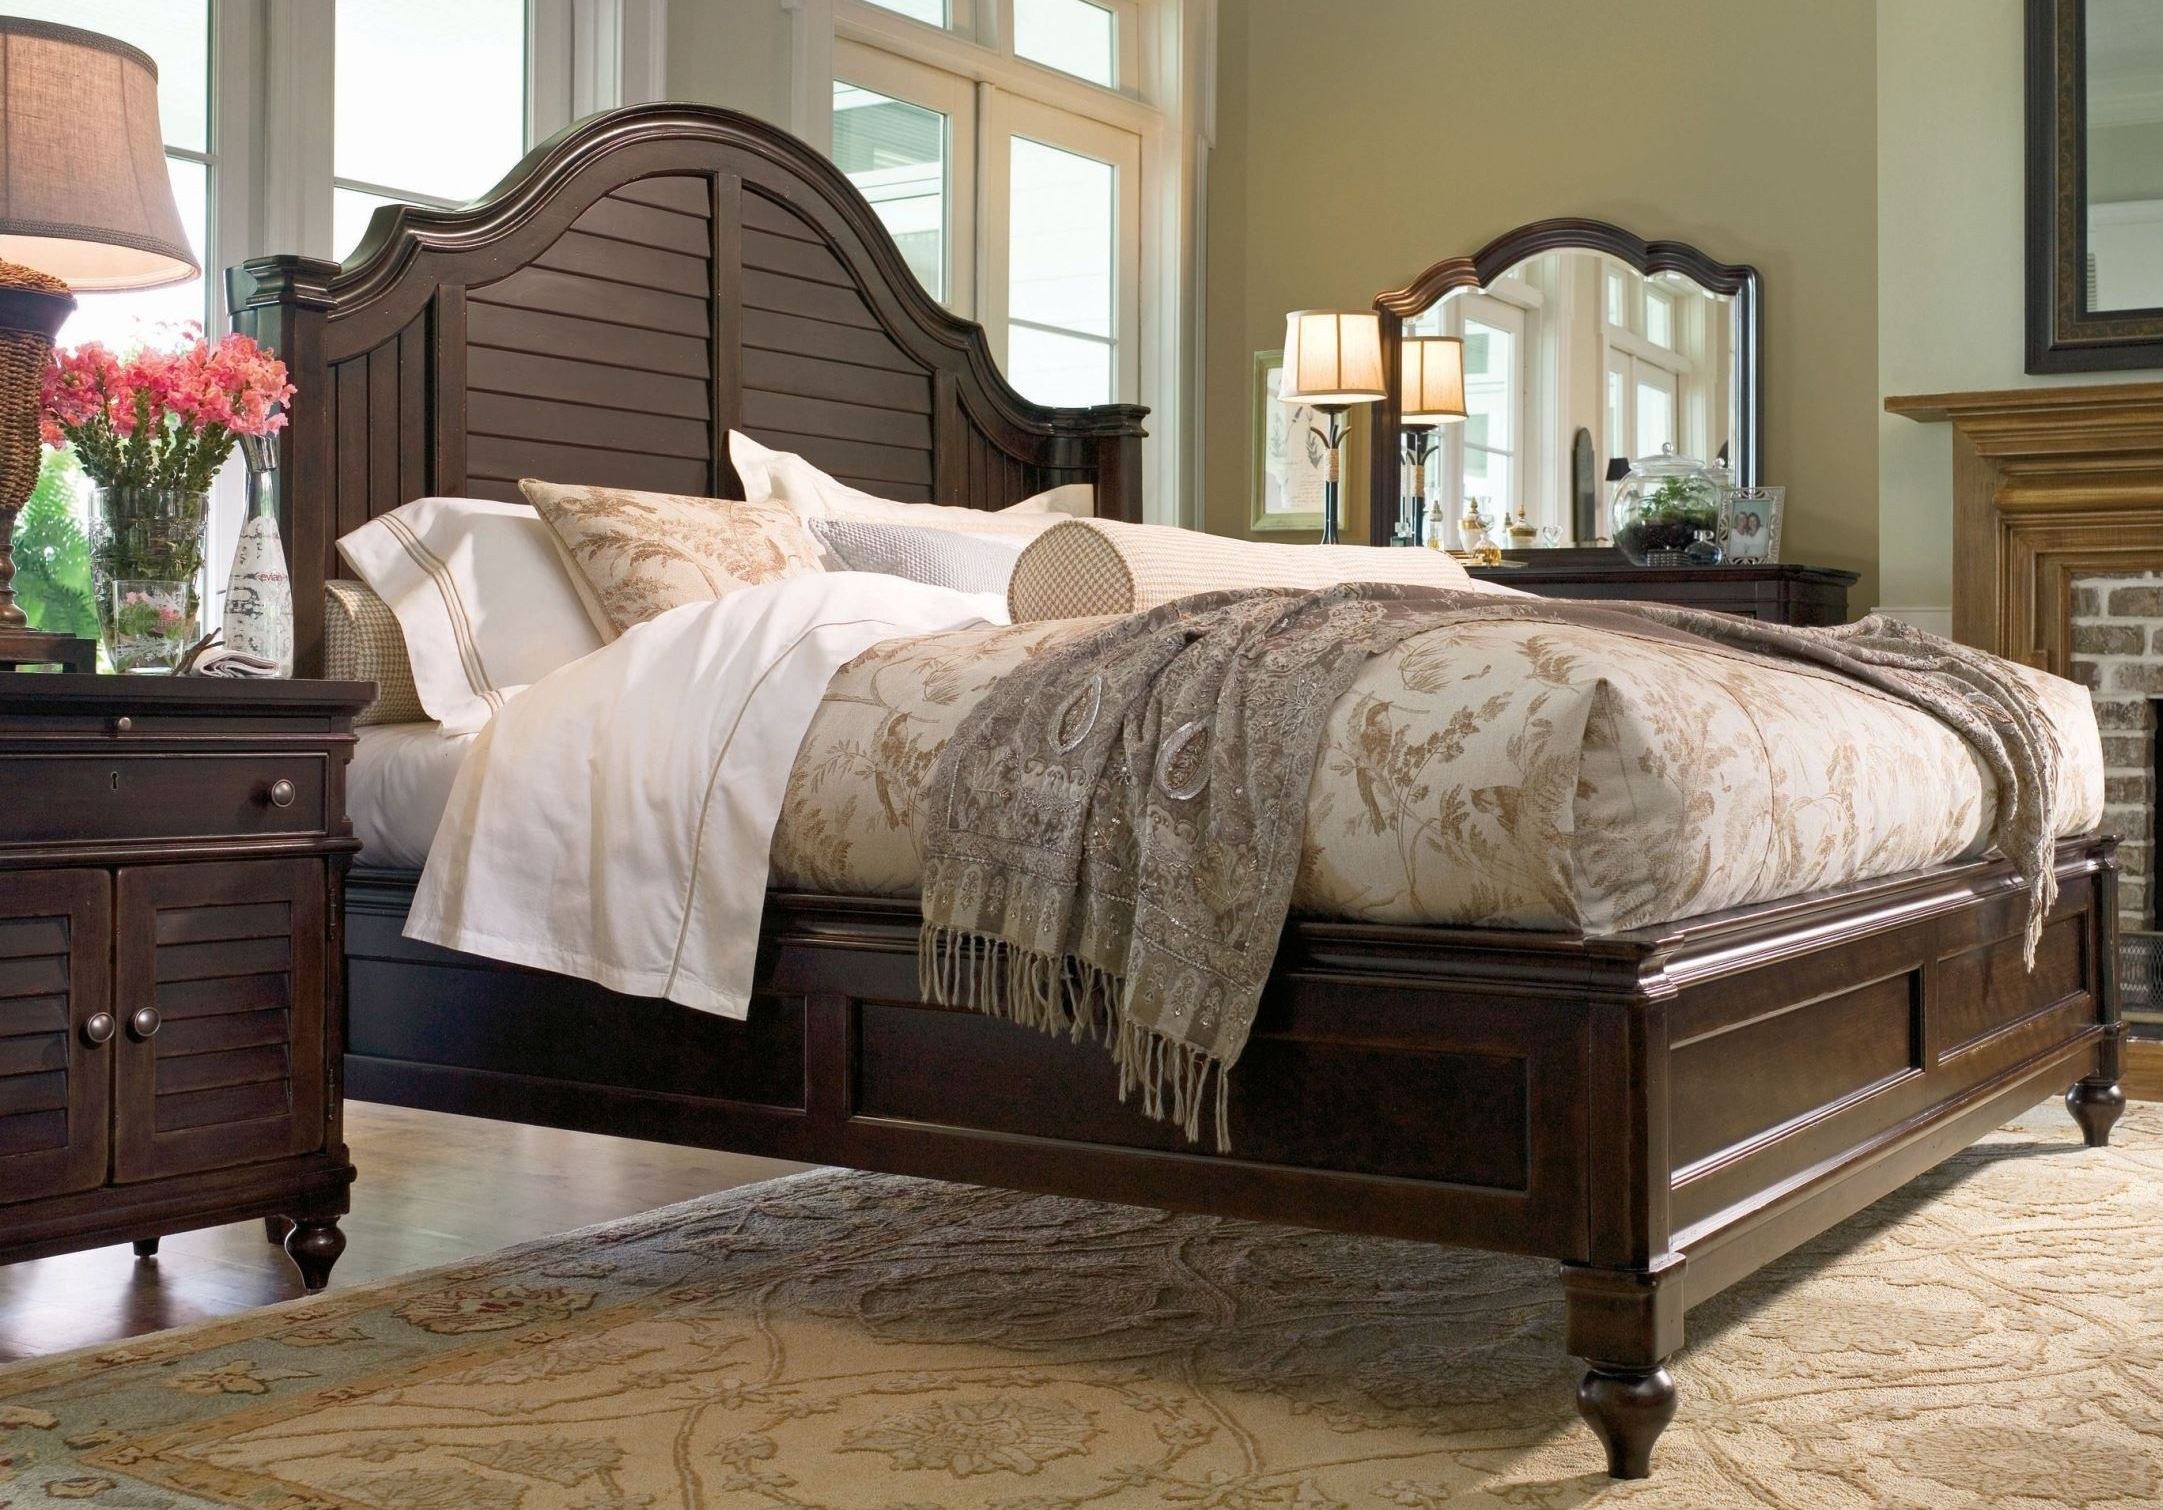 Paula deen home tobacco steel magnolia bedroom set from - Paula deen bedroom furniture collection ...